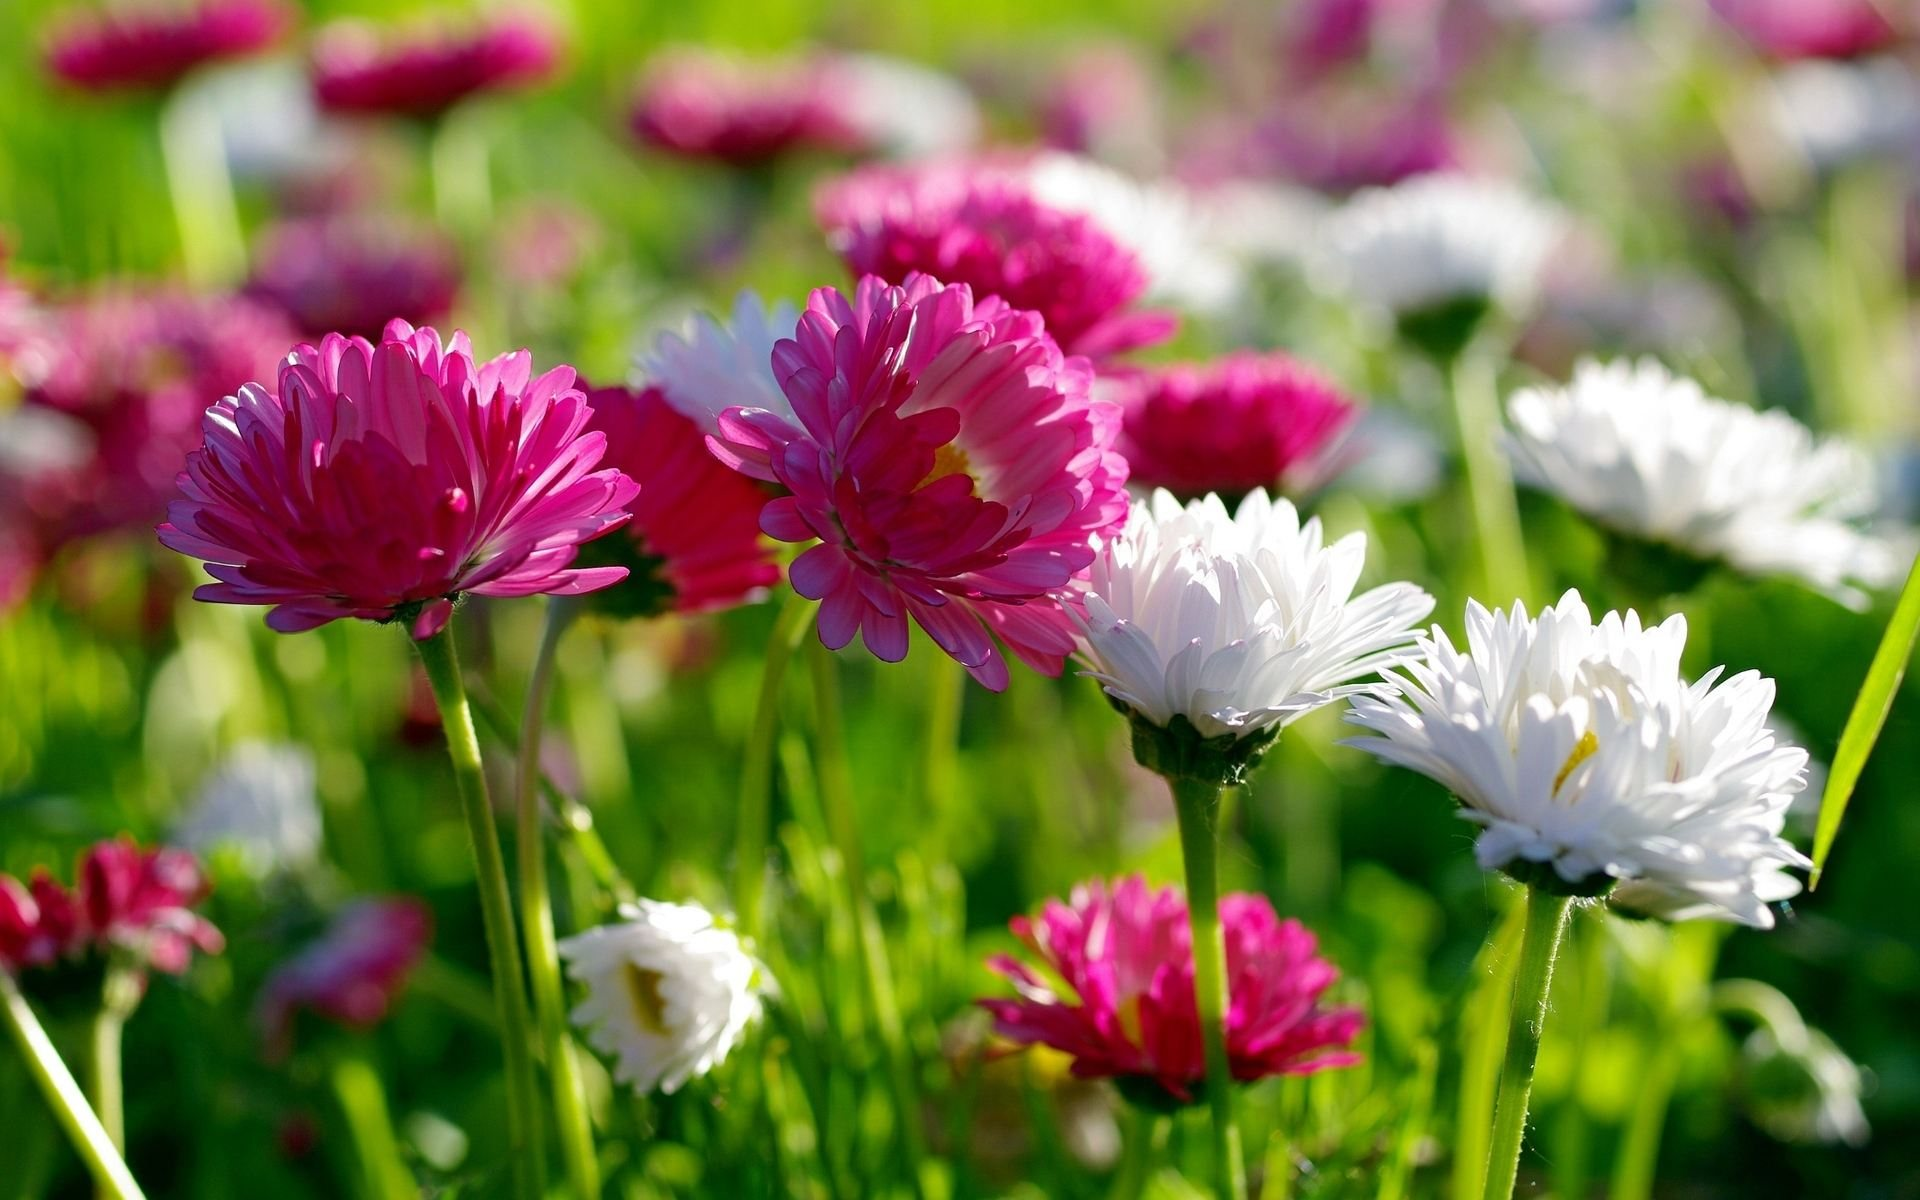 Spring flower pictures download clipart transparent stock Awesome Pics | Spring Flowers HD Widescreen Wallpapers (43+) clipart transparent stock